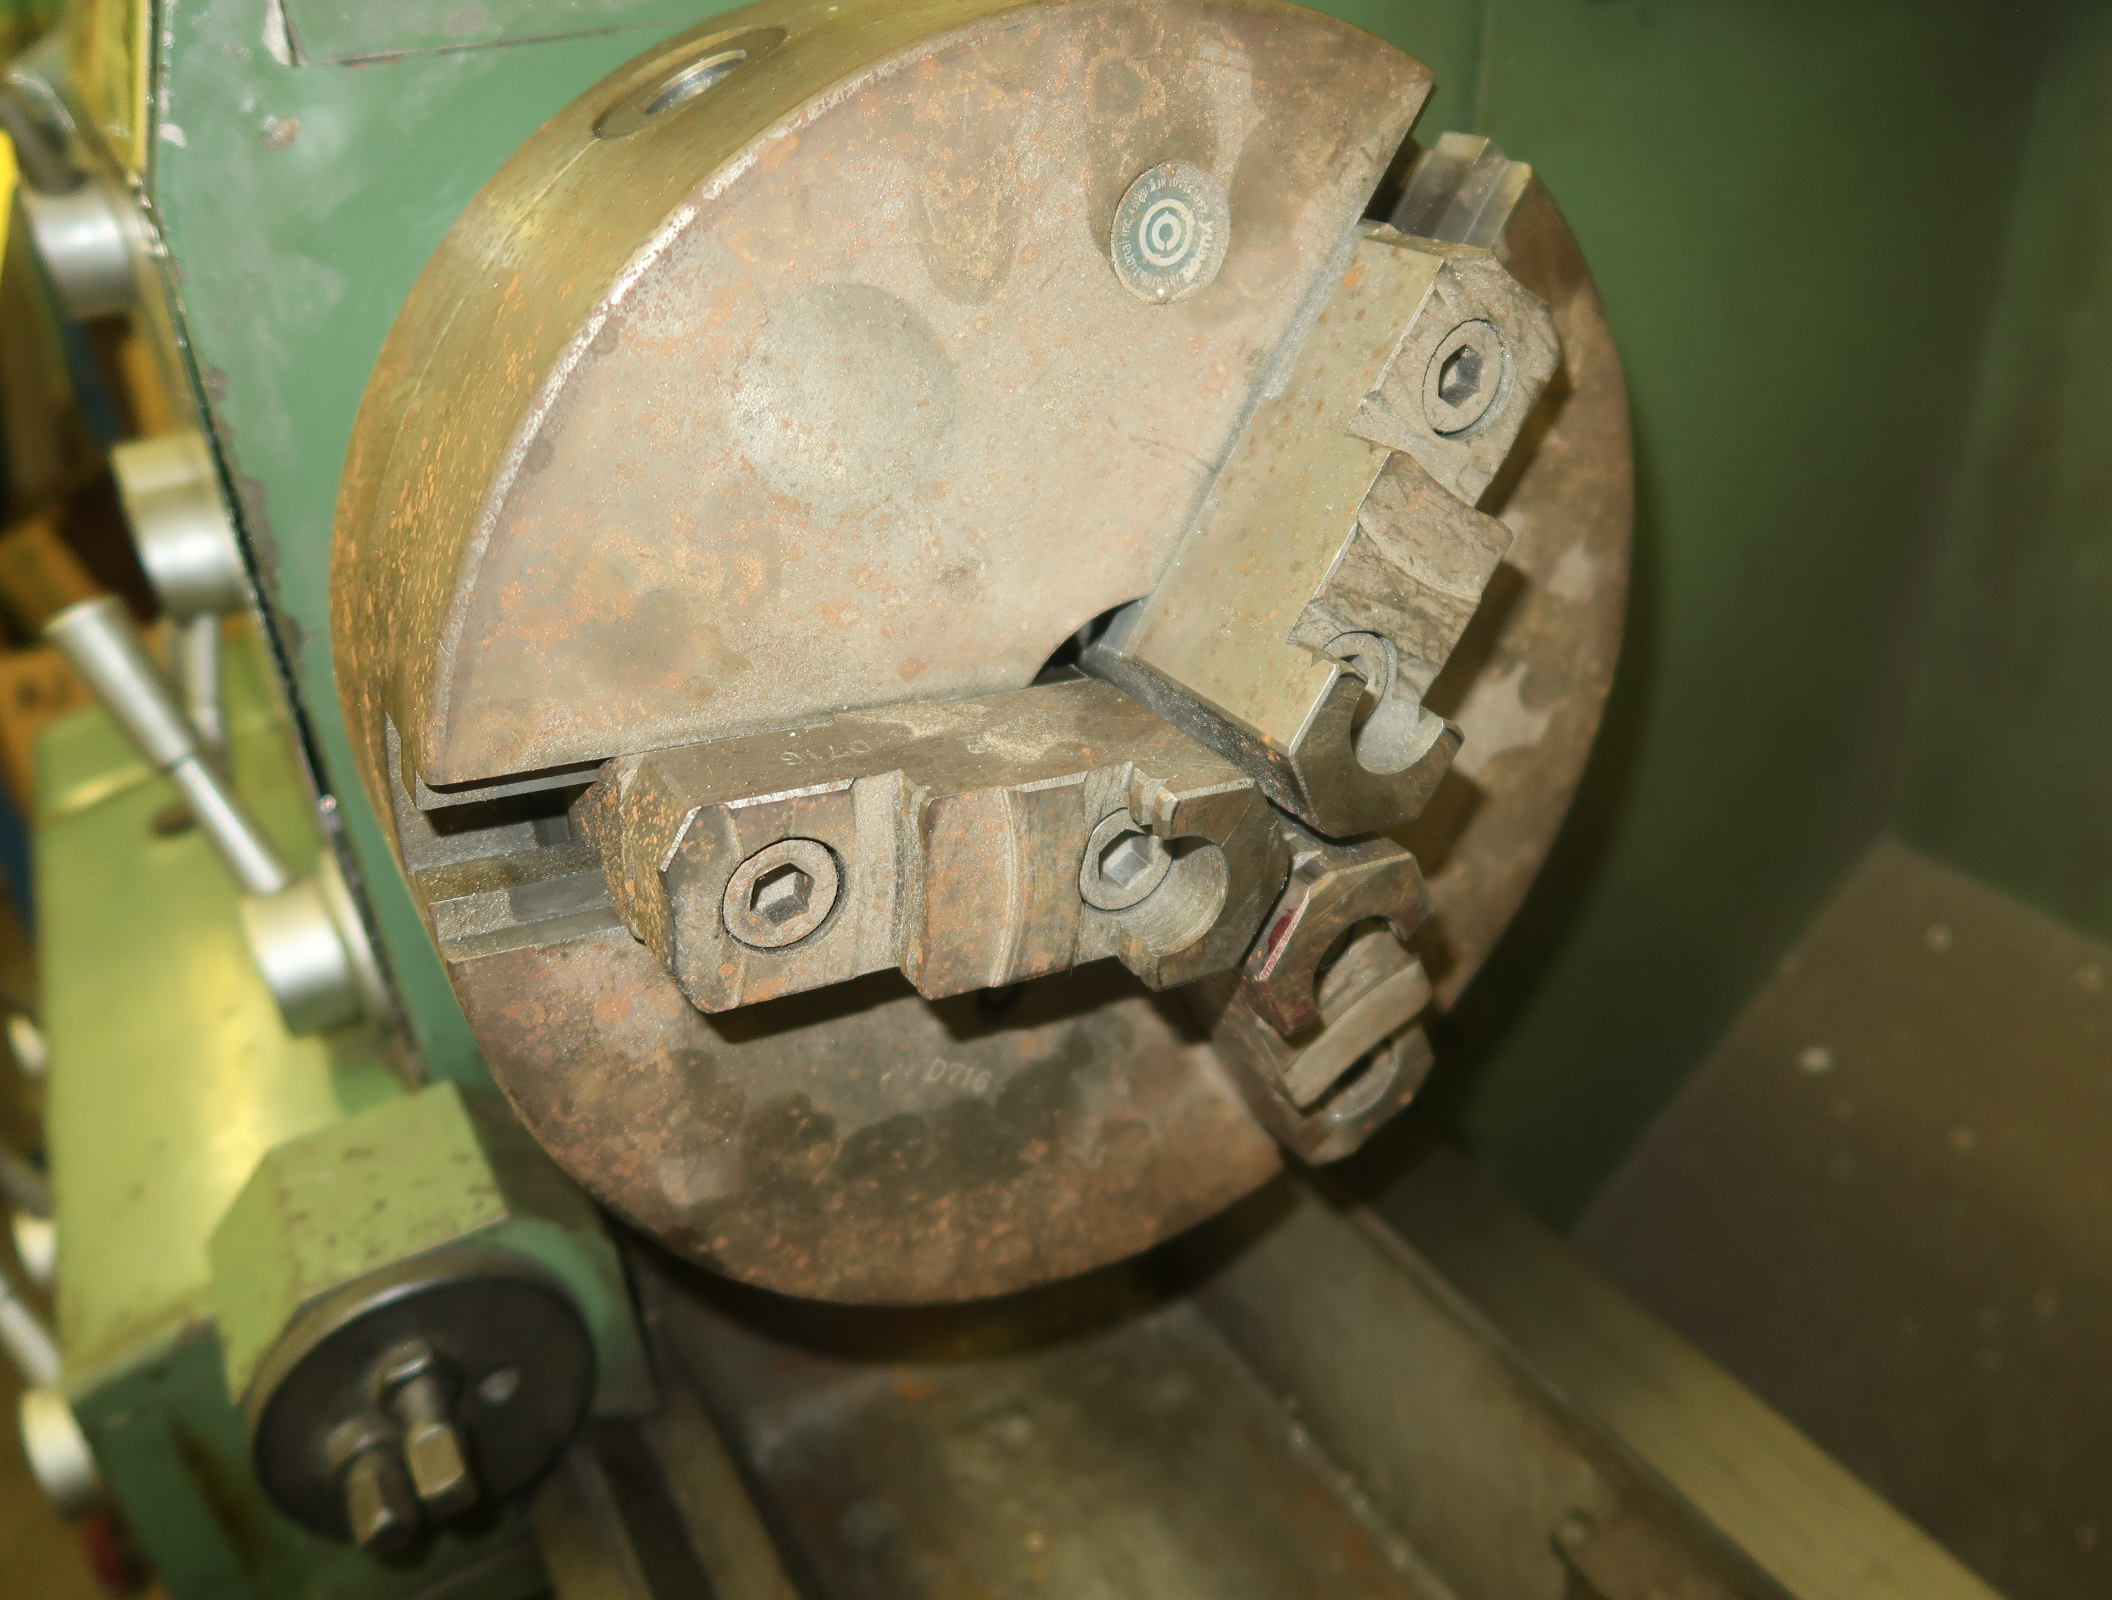 VICTOR 1640B GAP BED, HIGH SPEED ENGINE LATHE, SN. 19112123, COLLET CLOSURE, QUICK CHANGE TOOL POST, - Image 4 of 7